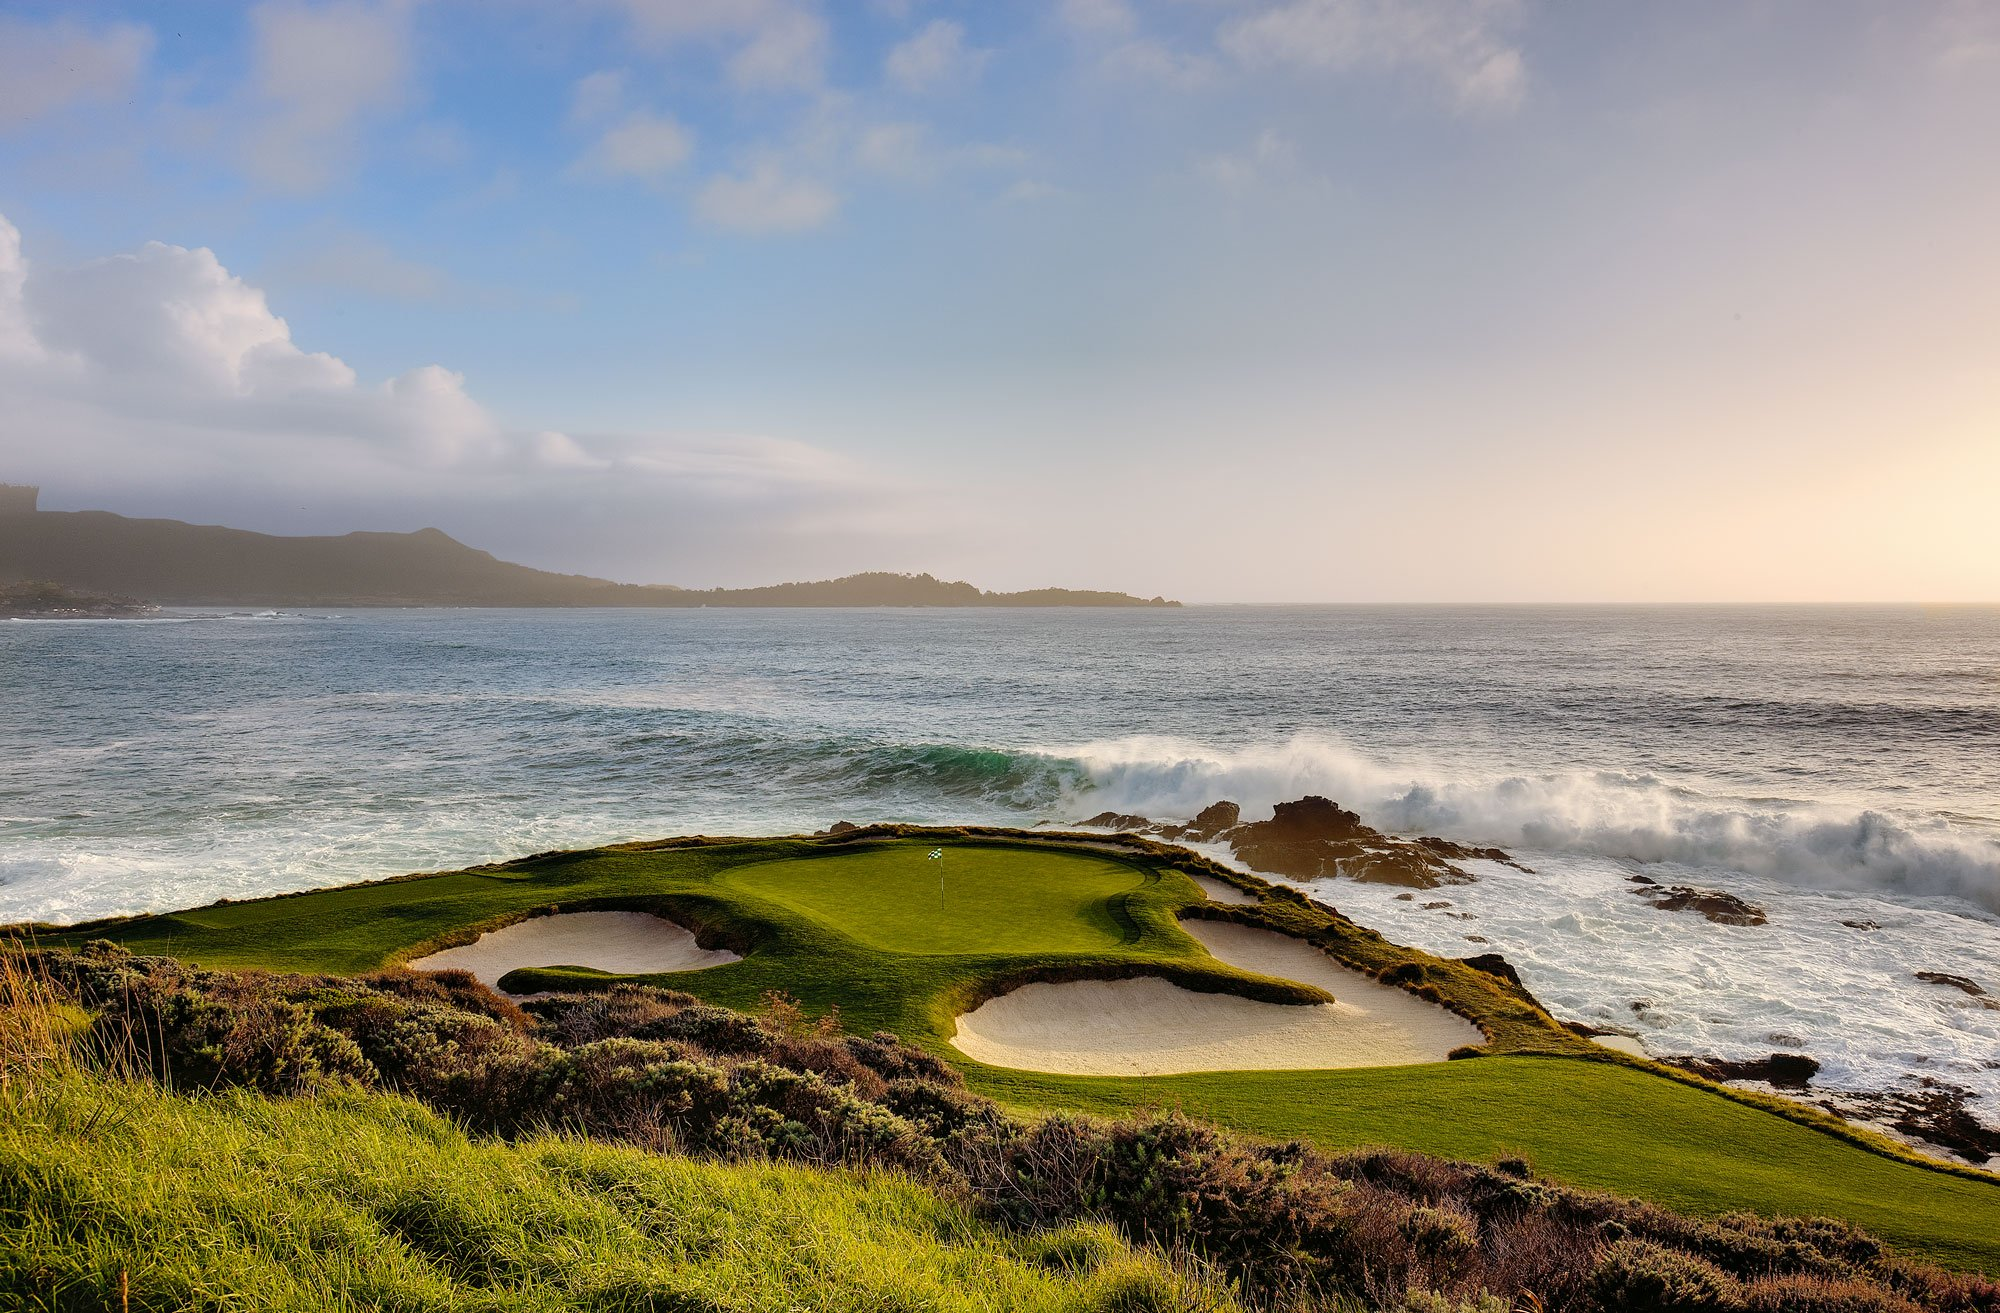 7th hole at Pebble Beach